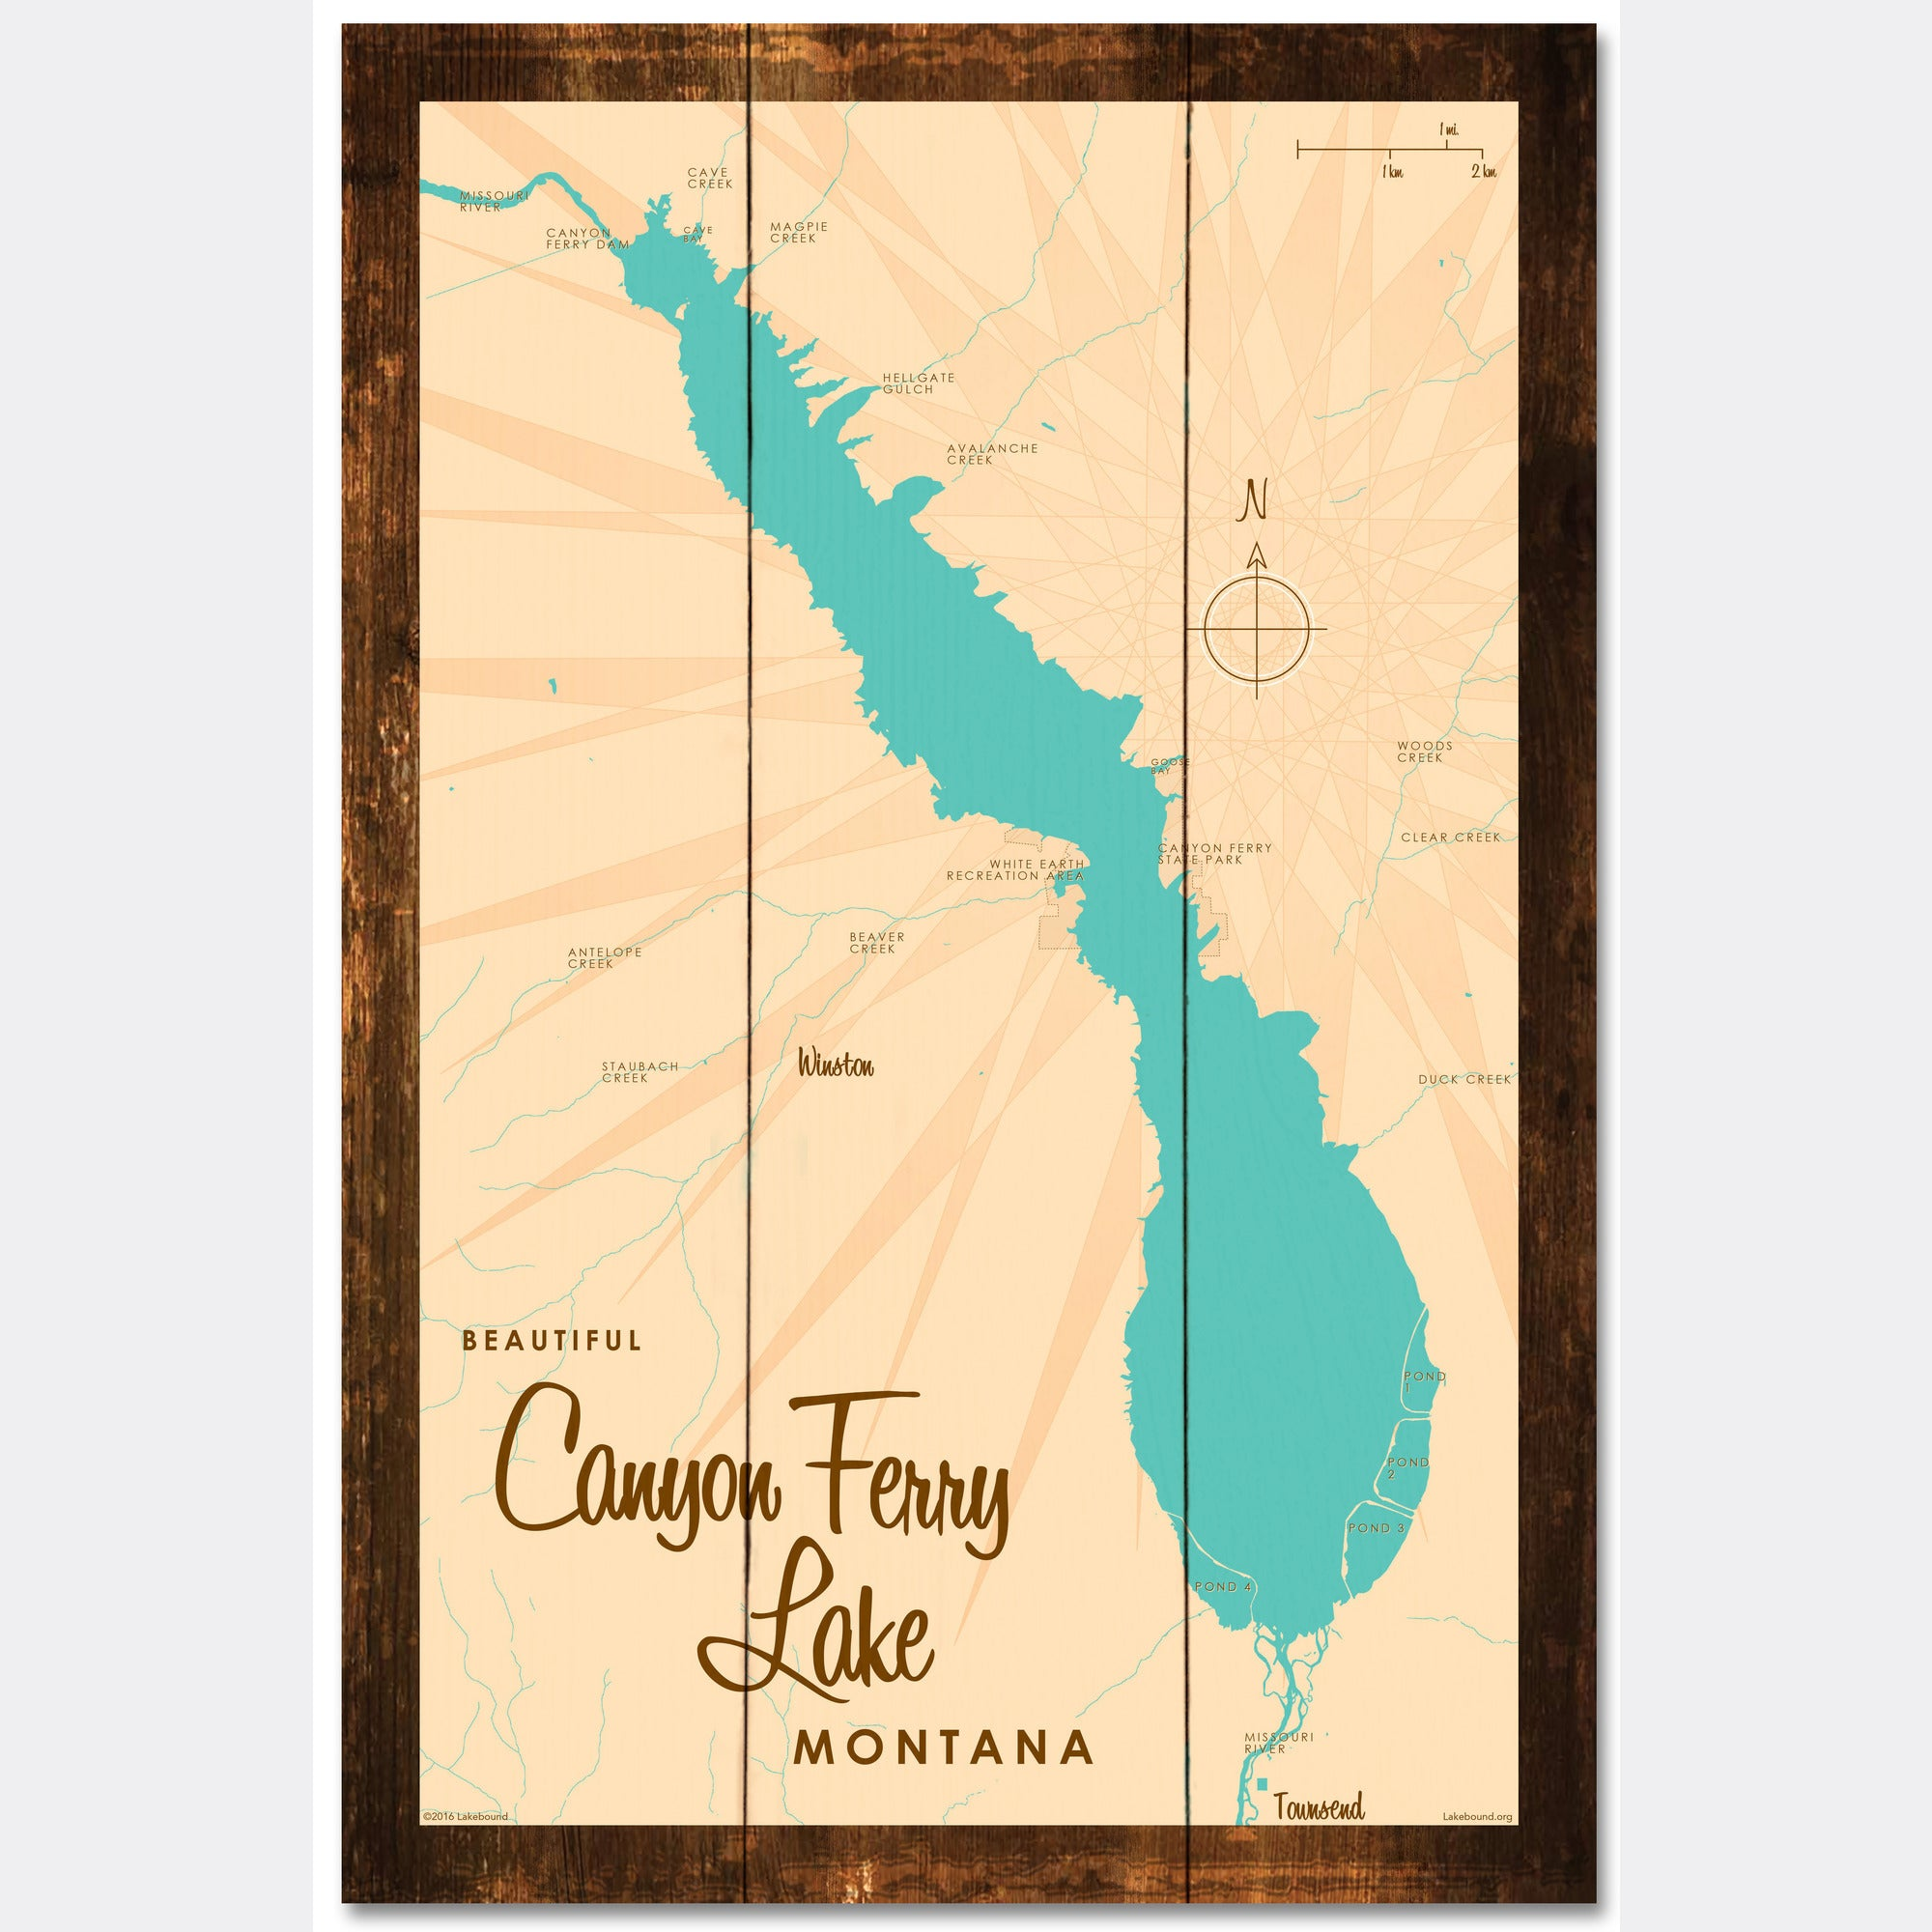 Canyon Ferry Lake Montana, Rustic Wood Sign Map Art